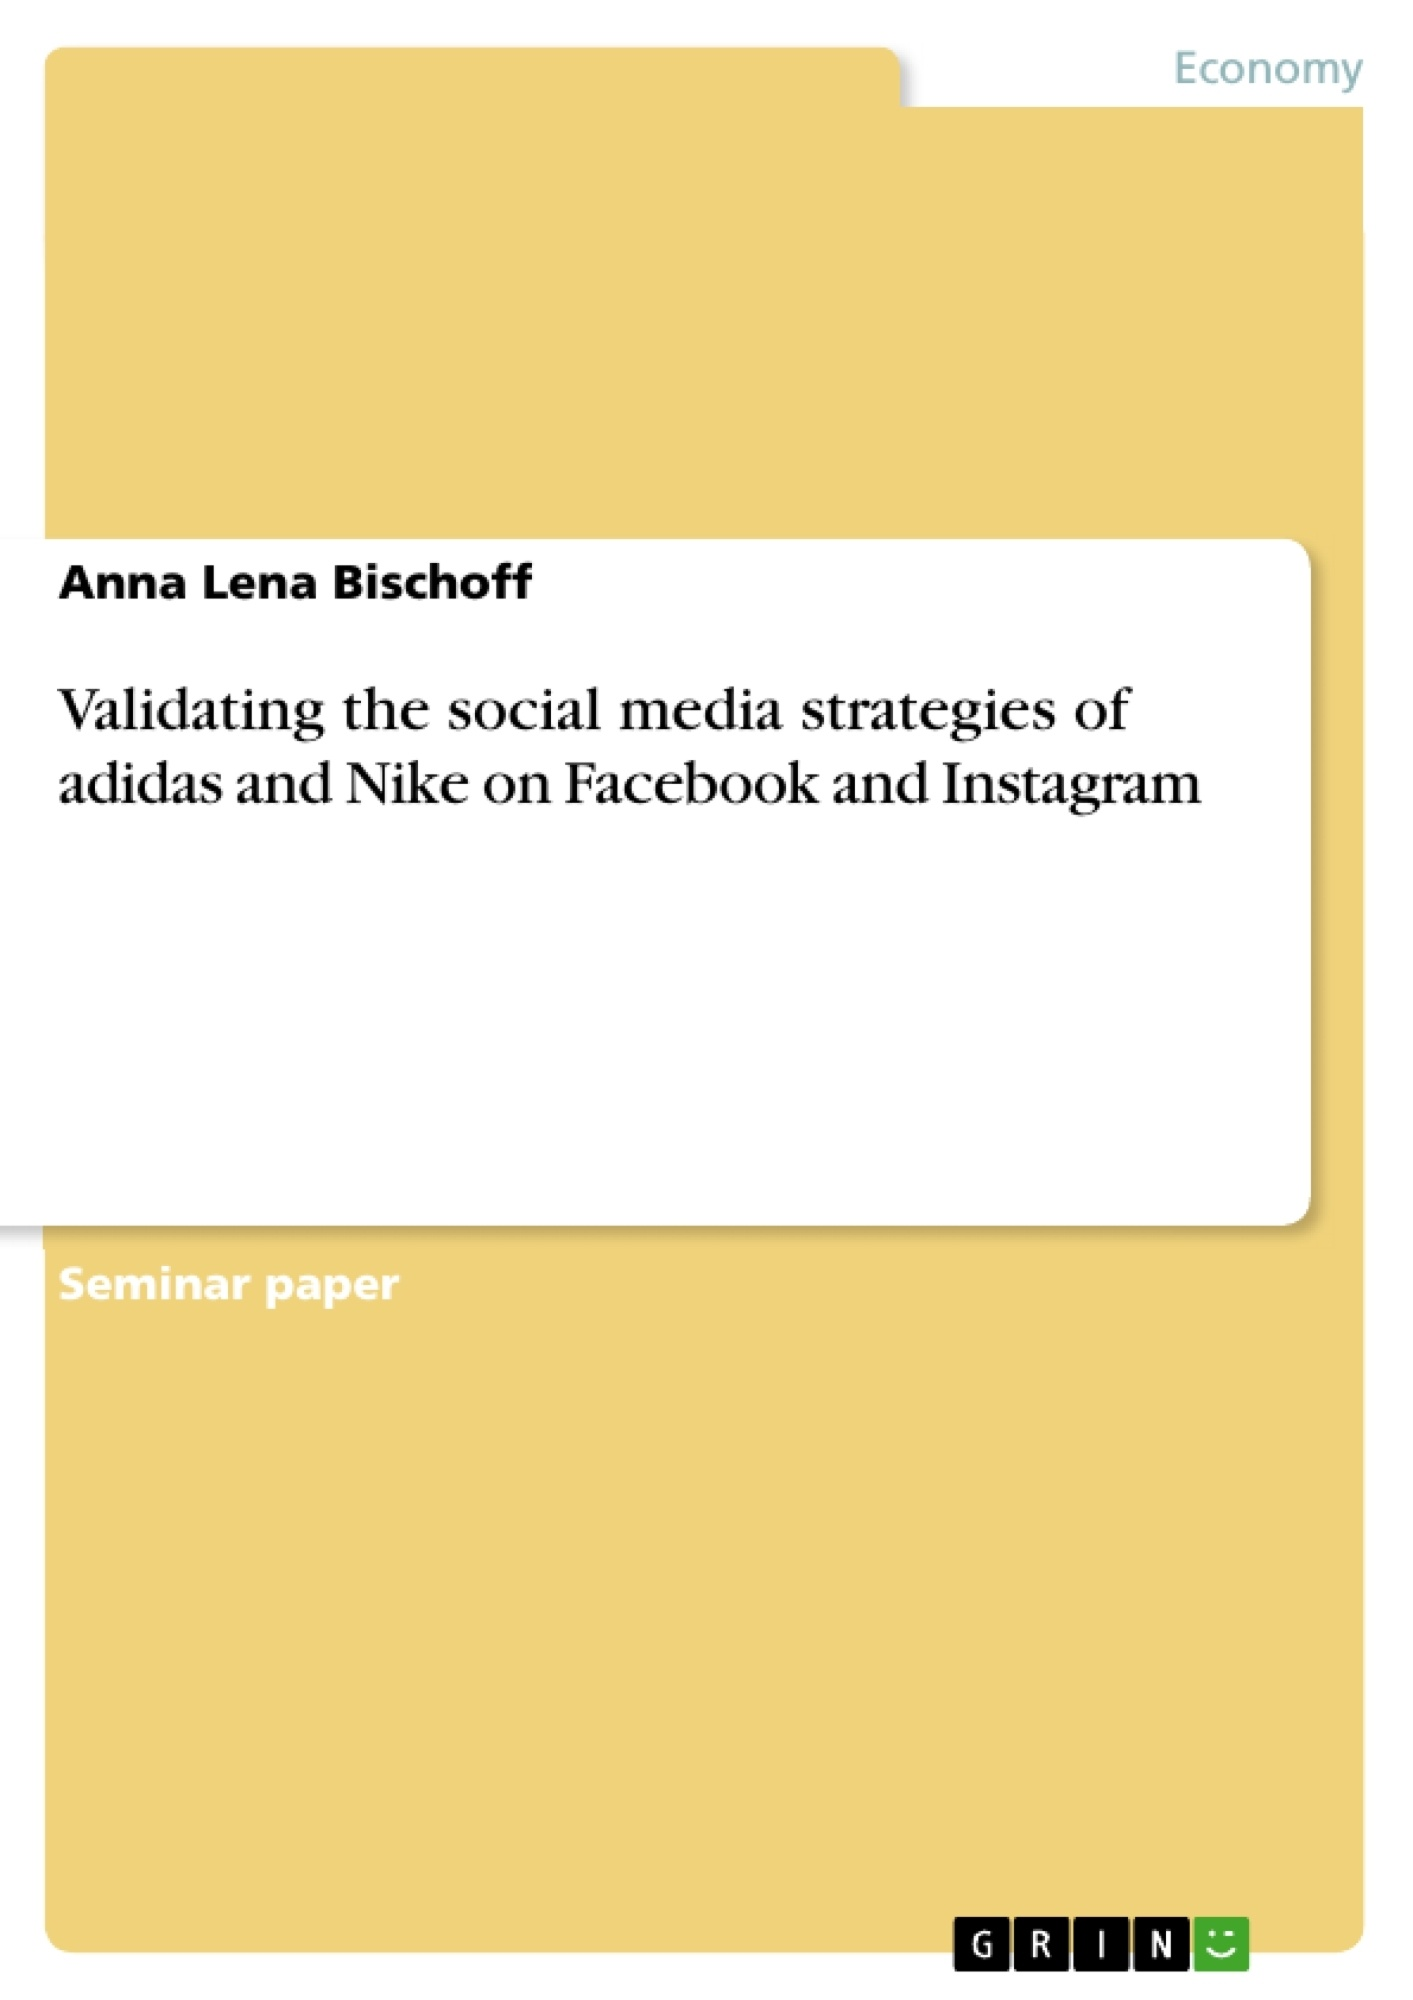 Title: Validating the social media strategies of adidas and Nike on Facebook and Instagram